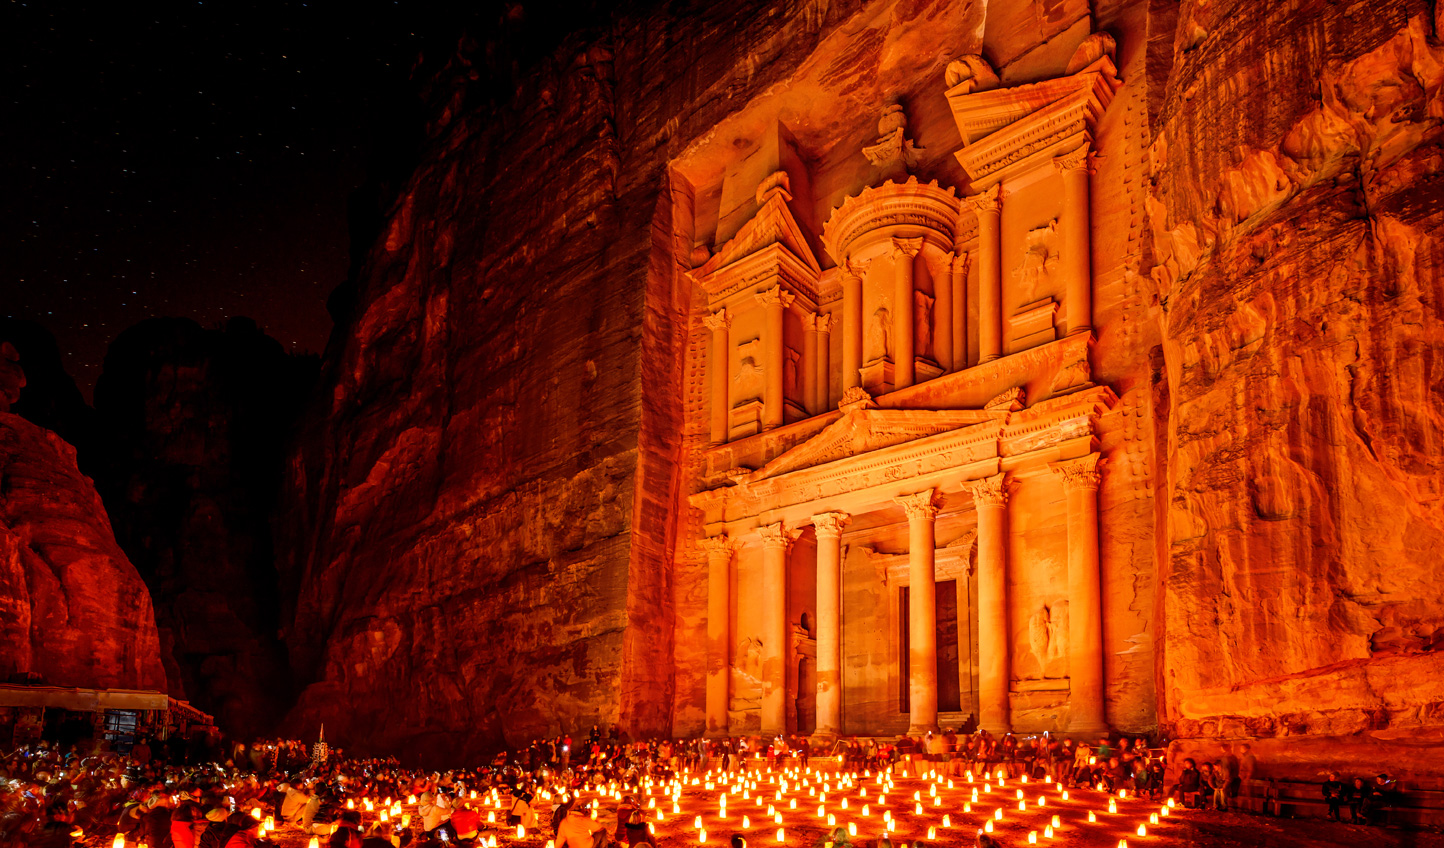 See Petra by night as it is lit up by thousands of candles